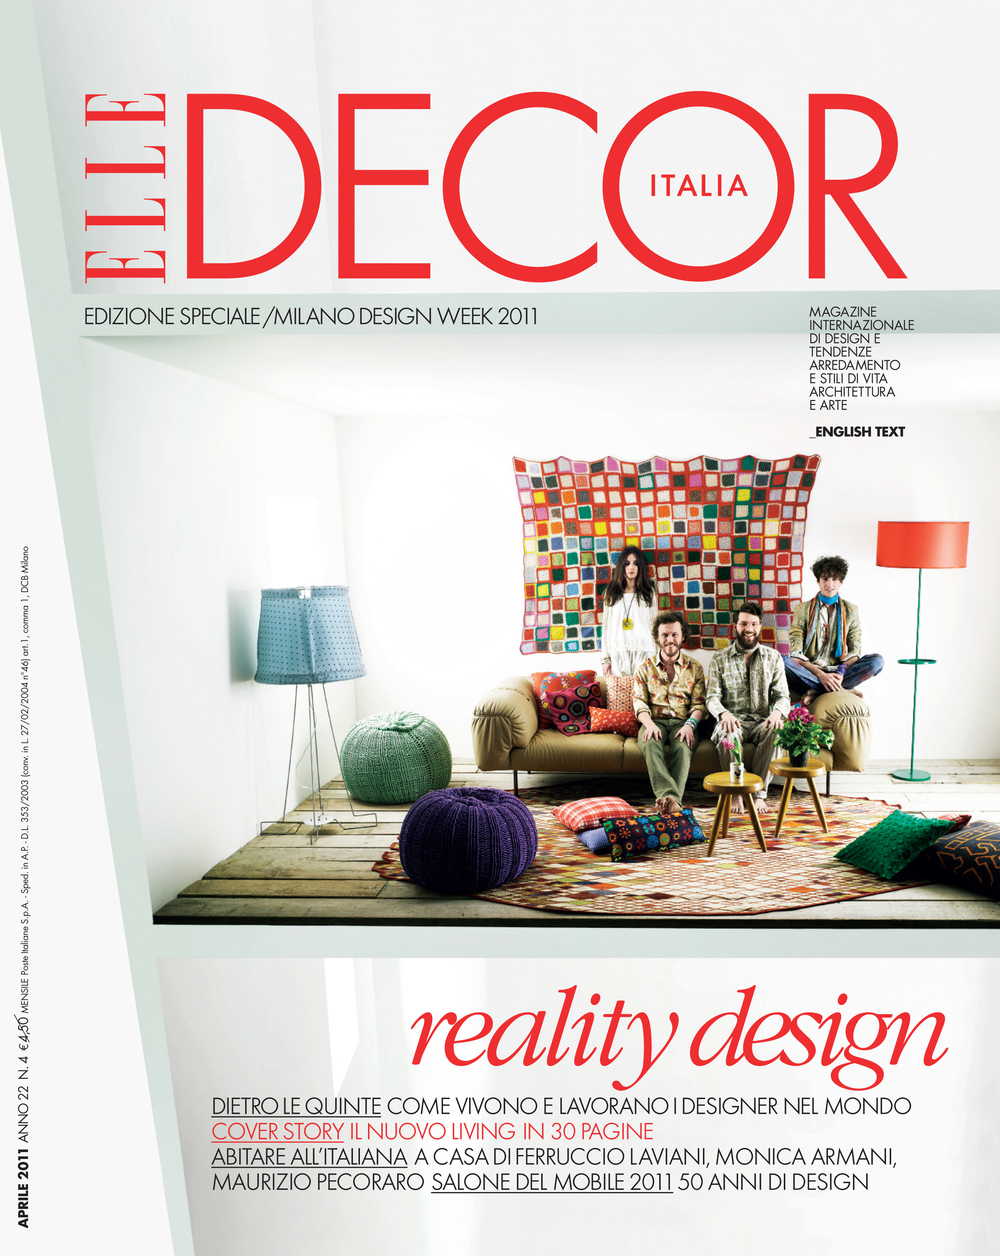 Beirut_Elle Decor Italia Apr2011 1.jpg